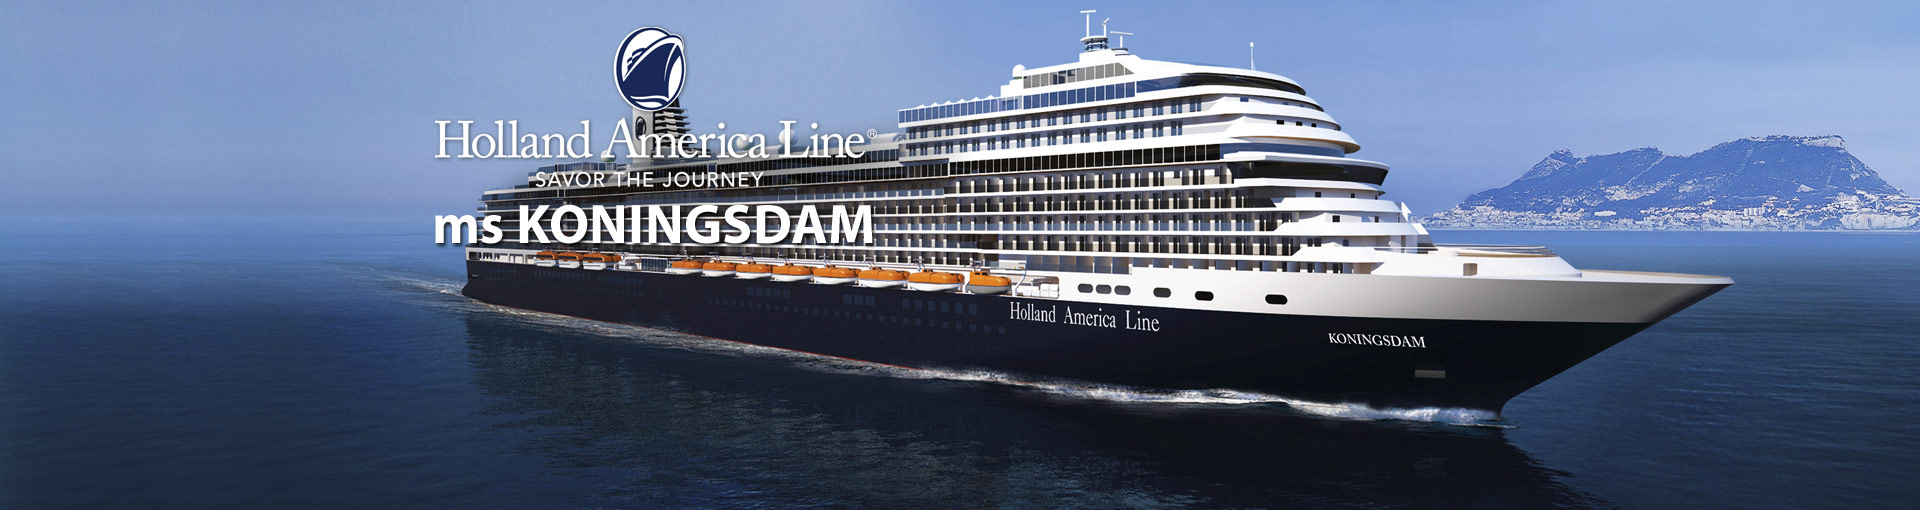 Holland America ms Koningsdam cruise ship